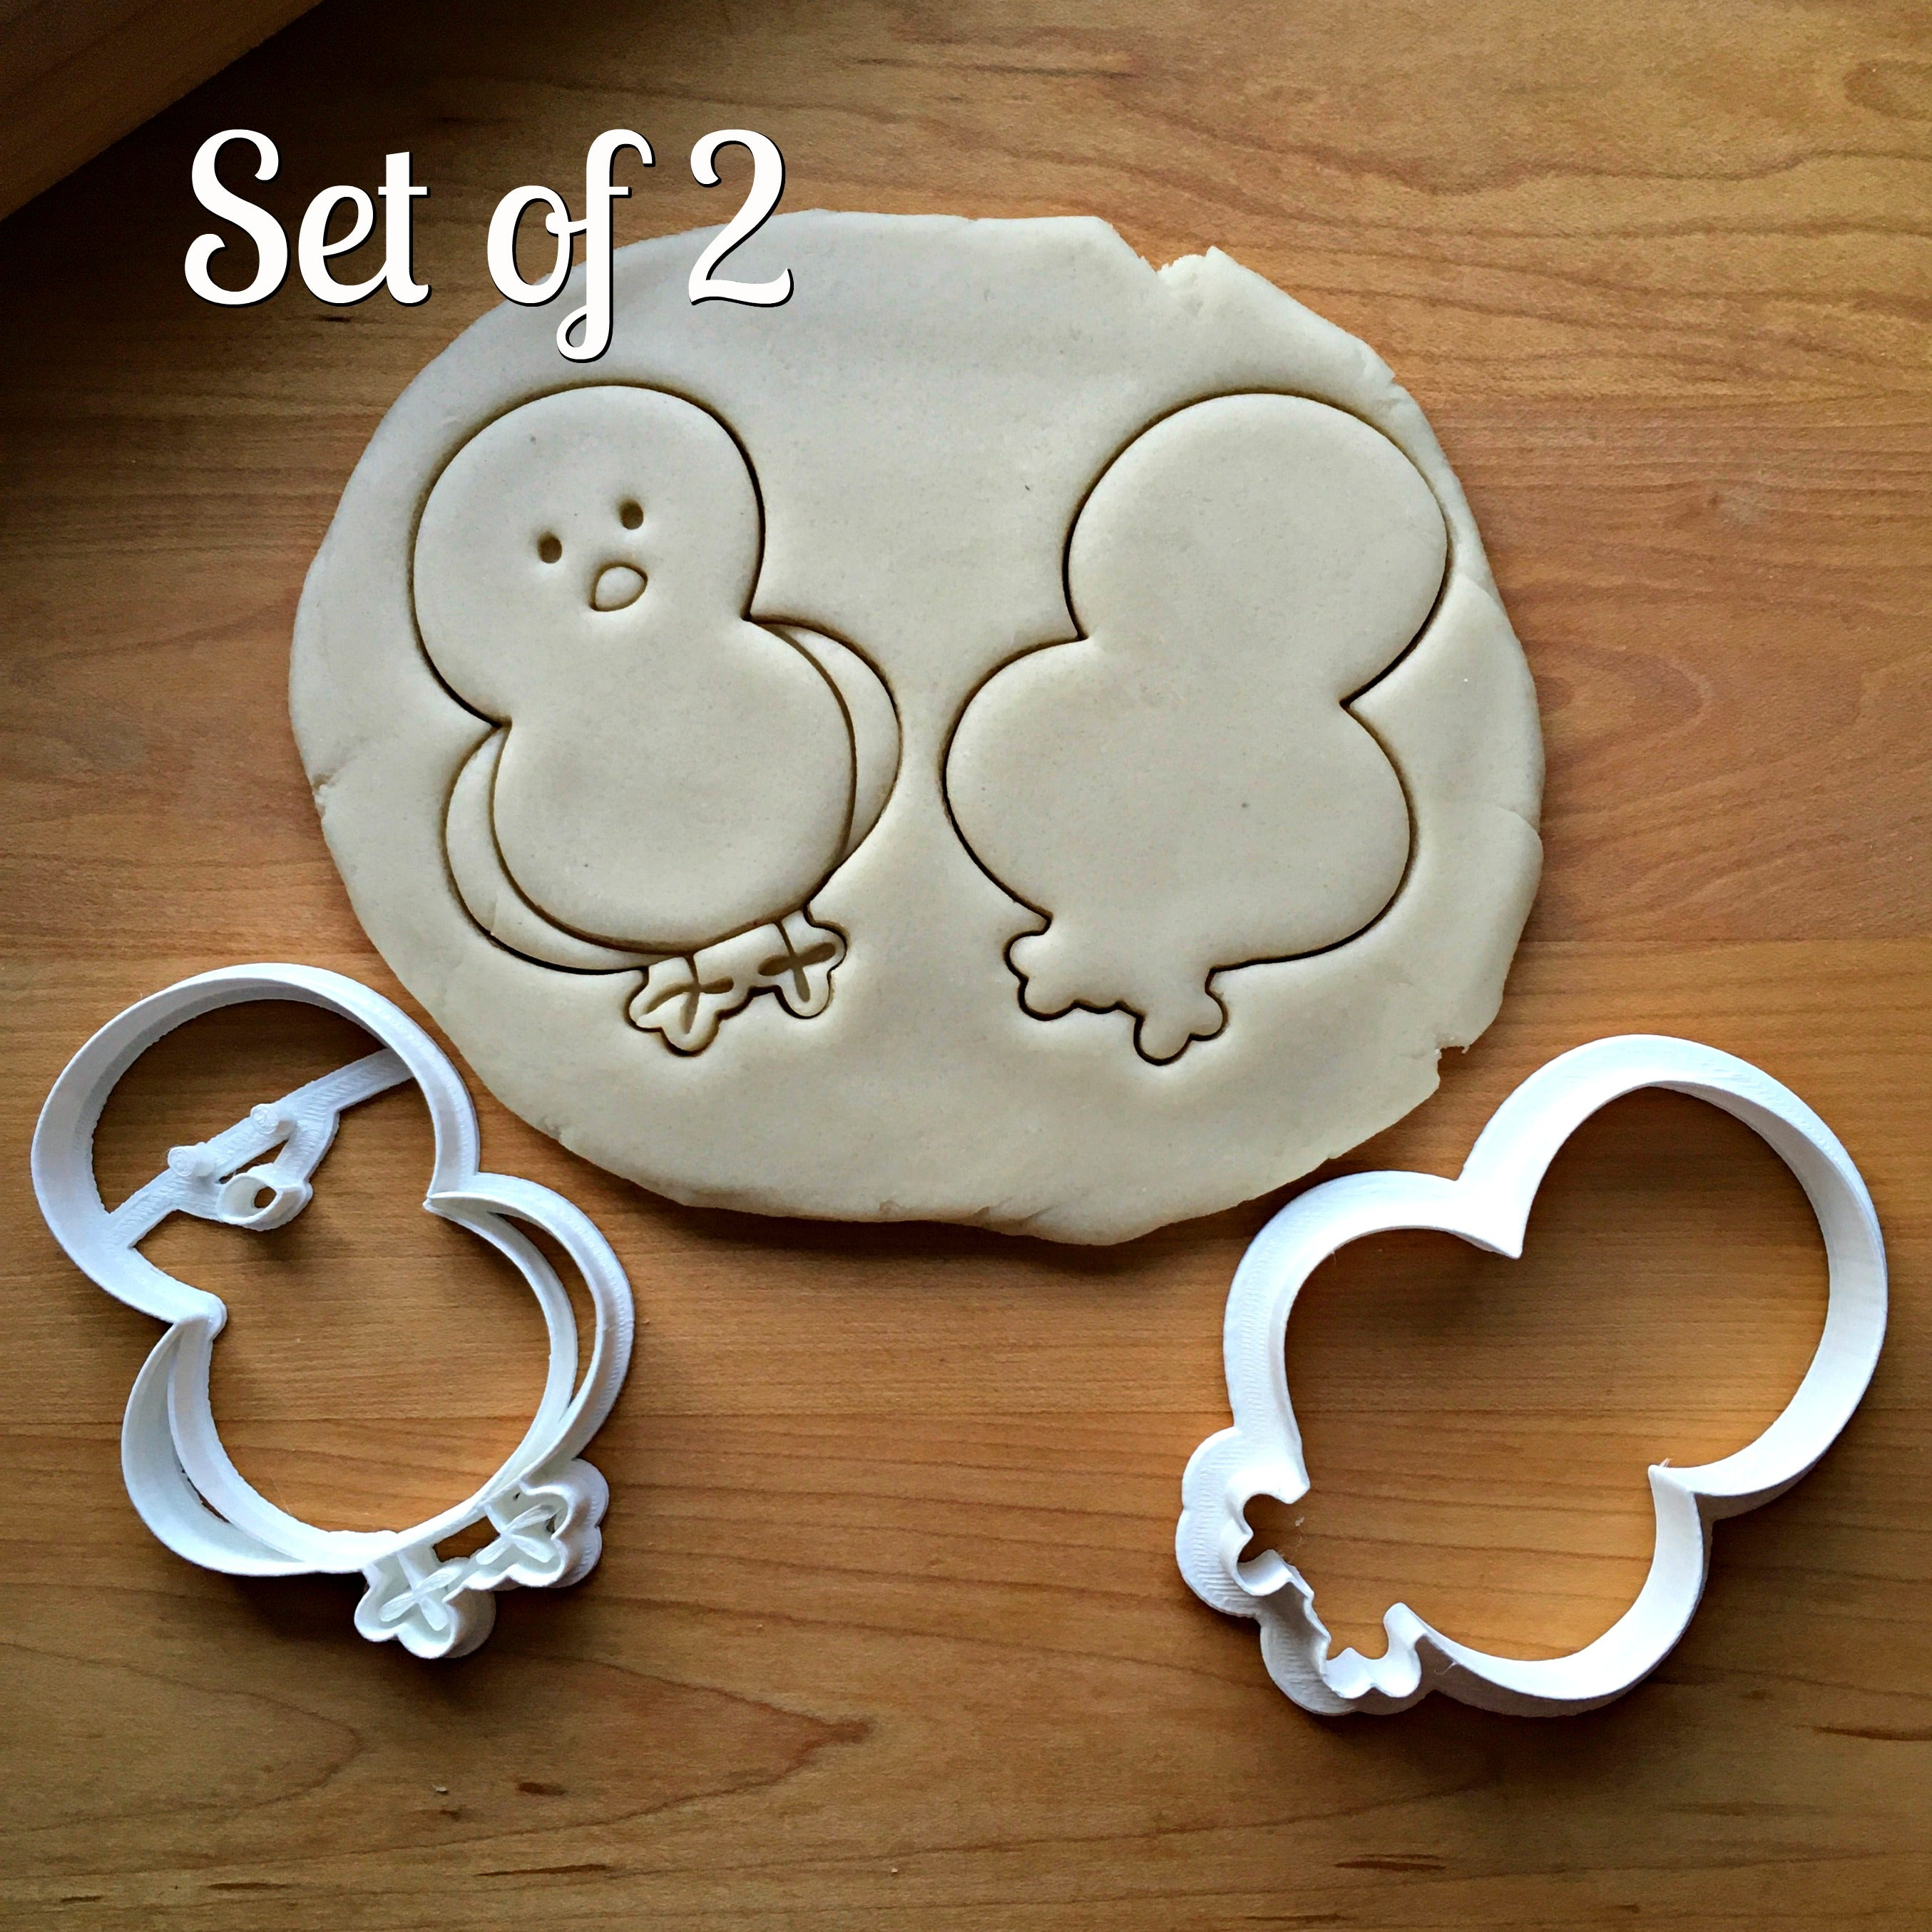 Set of 2 Baby Chick Cookie Cutters/Dishwasher Safe